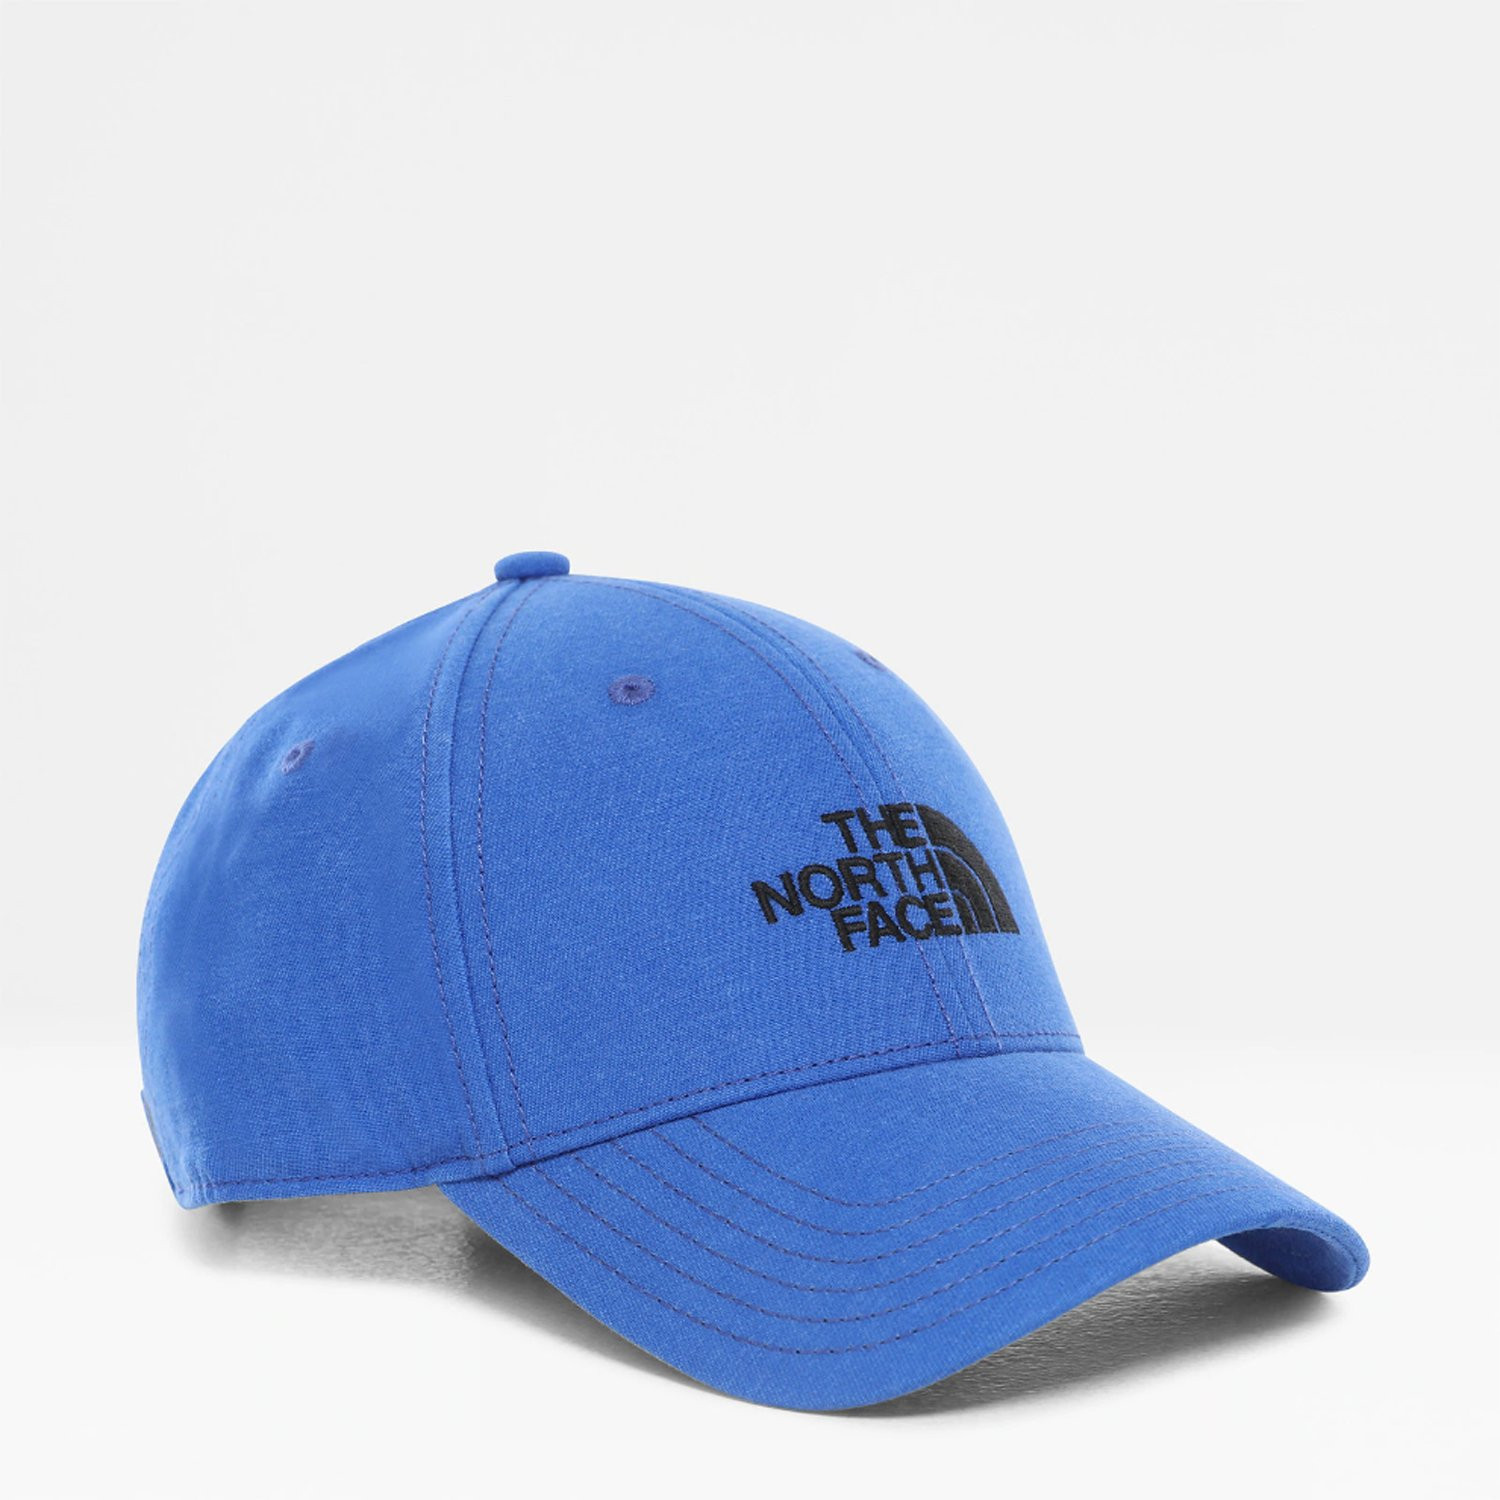 THE NORTH FACE 66 CLASSIC HAT (9000036529_41113)